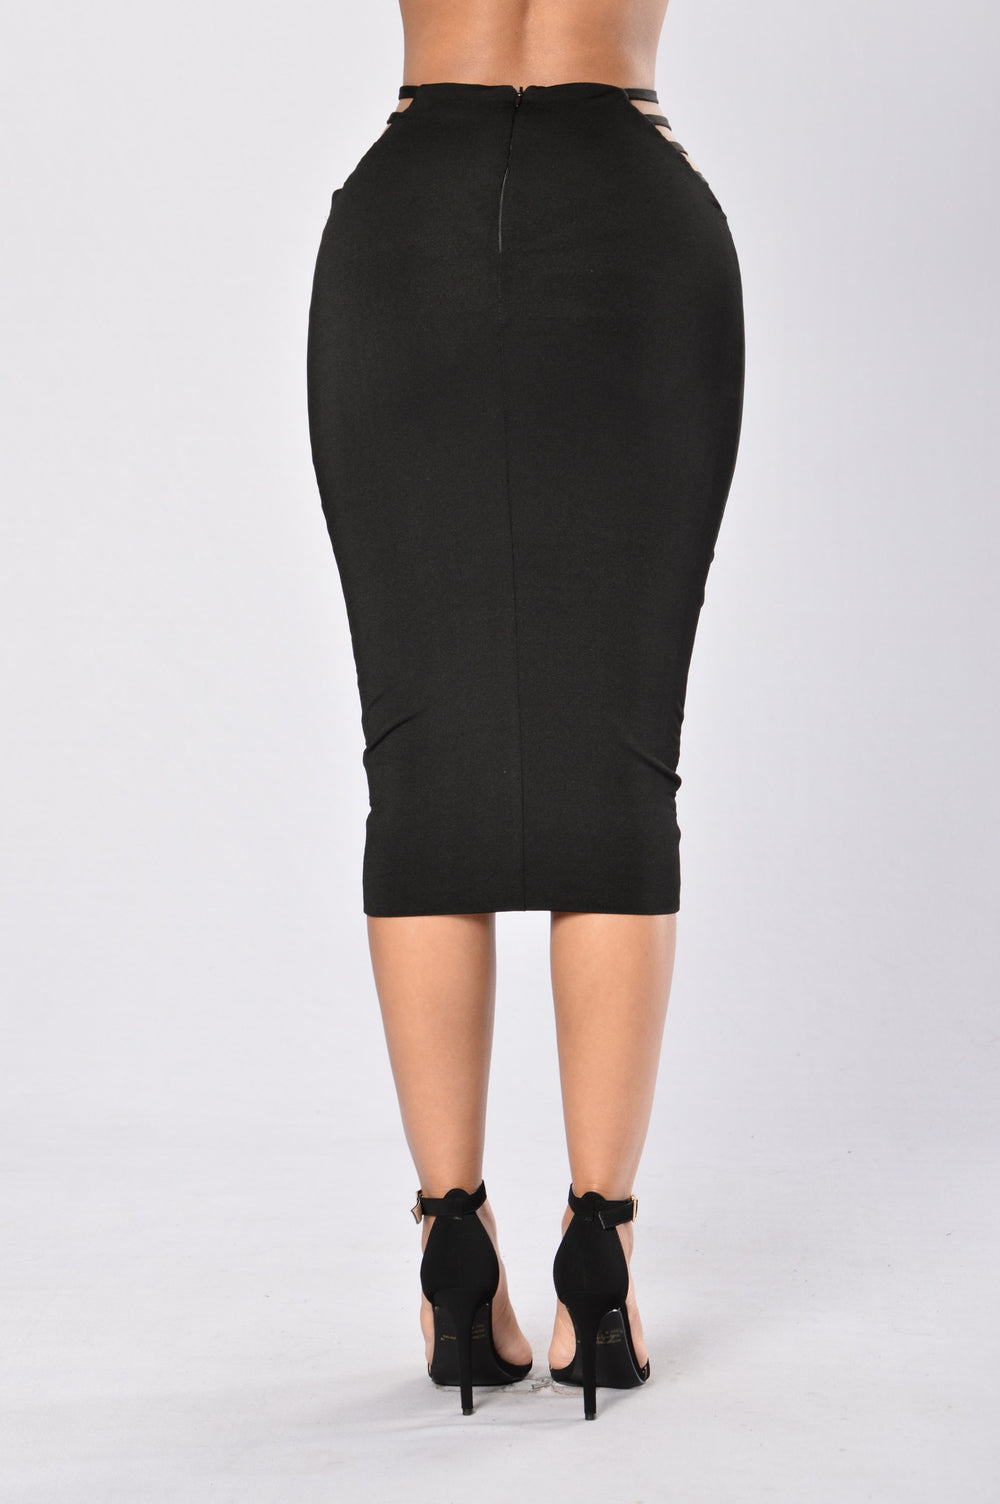 Guilty Pleasure Skirt - Black